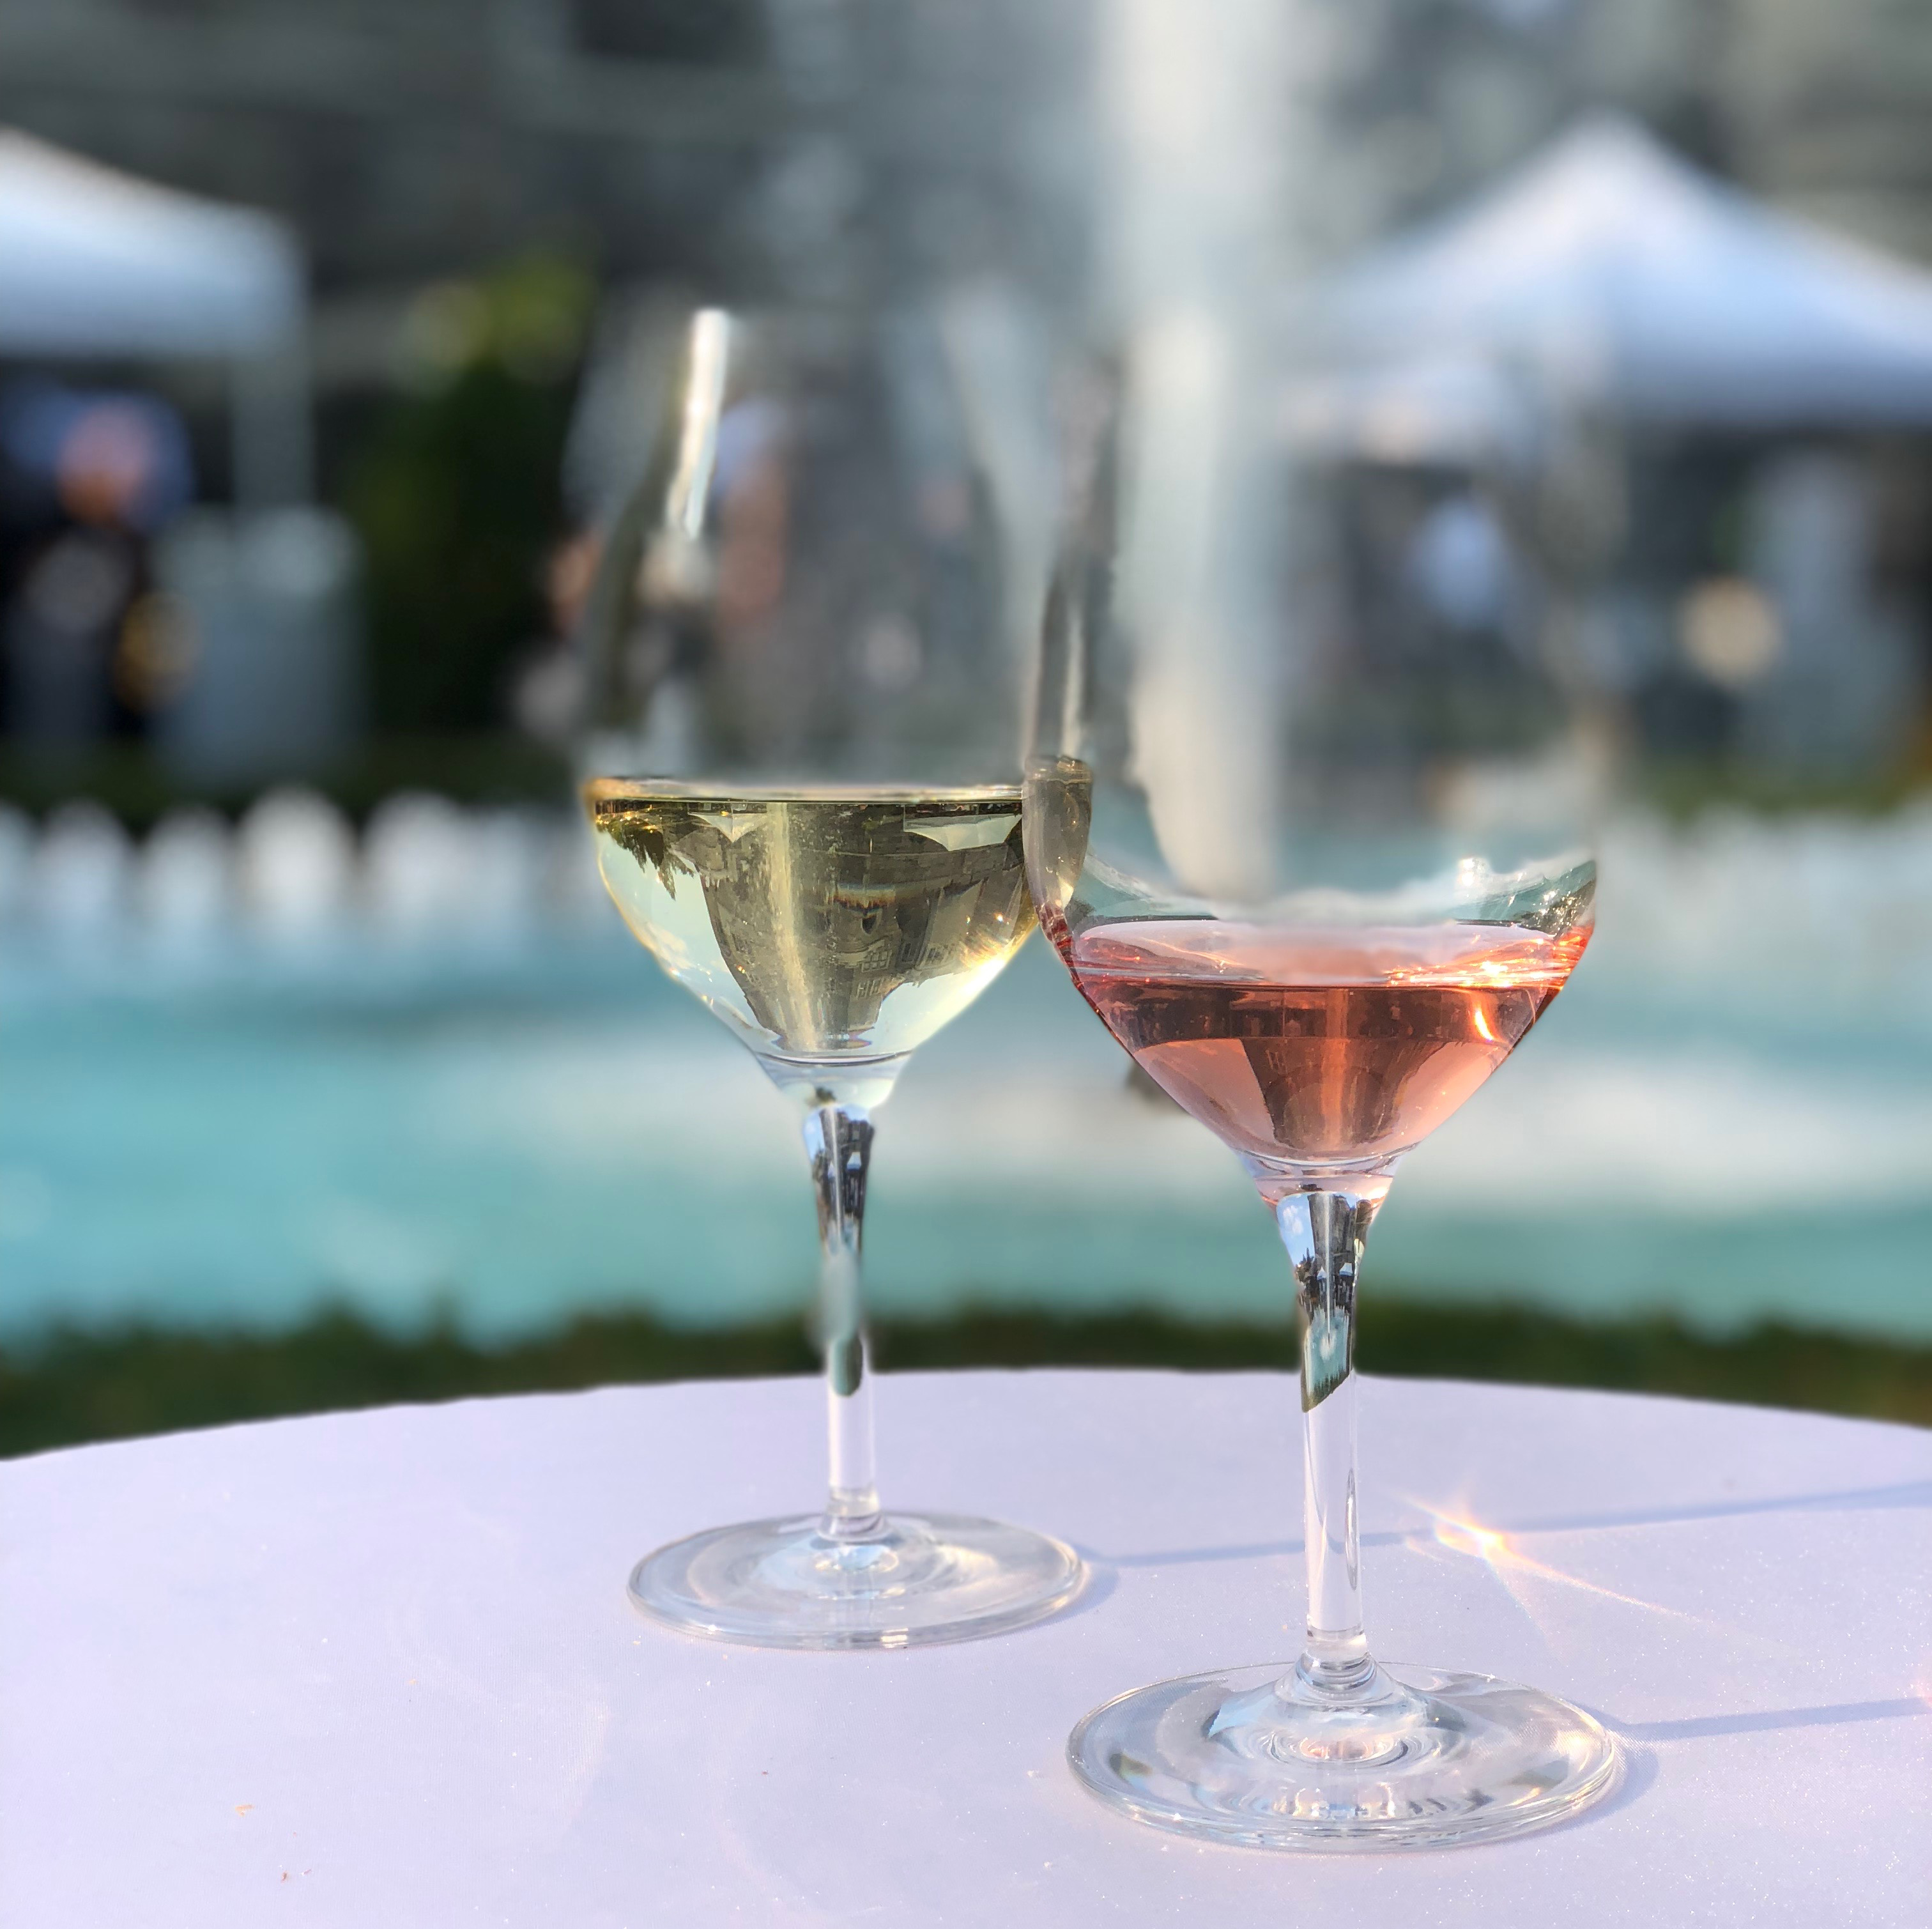 Out in the City: Symphony in the Gardens at Casa Loma